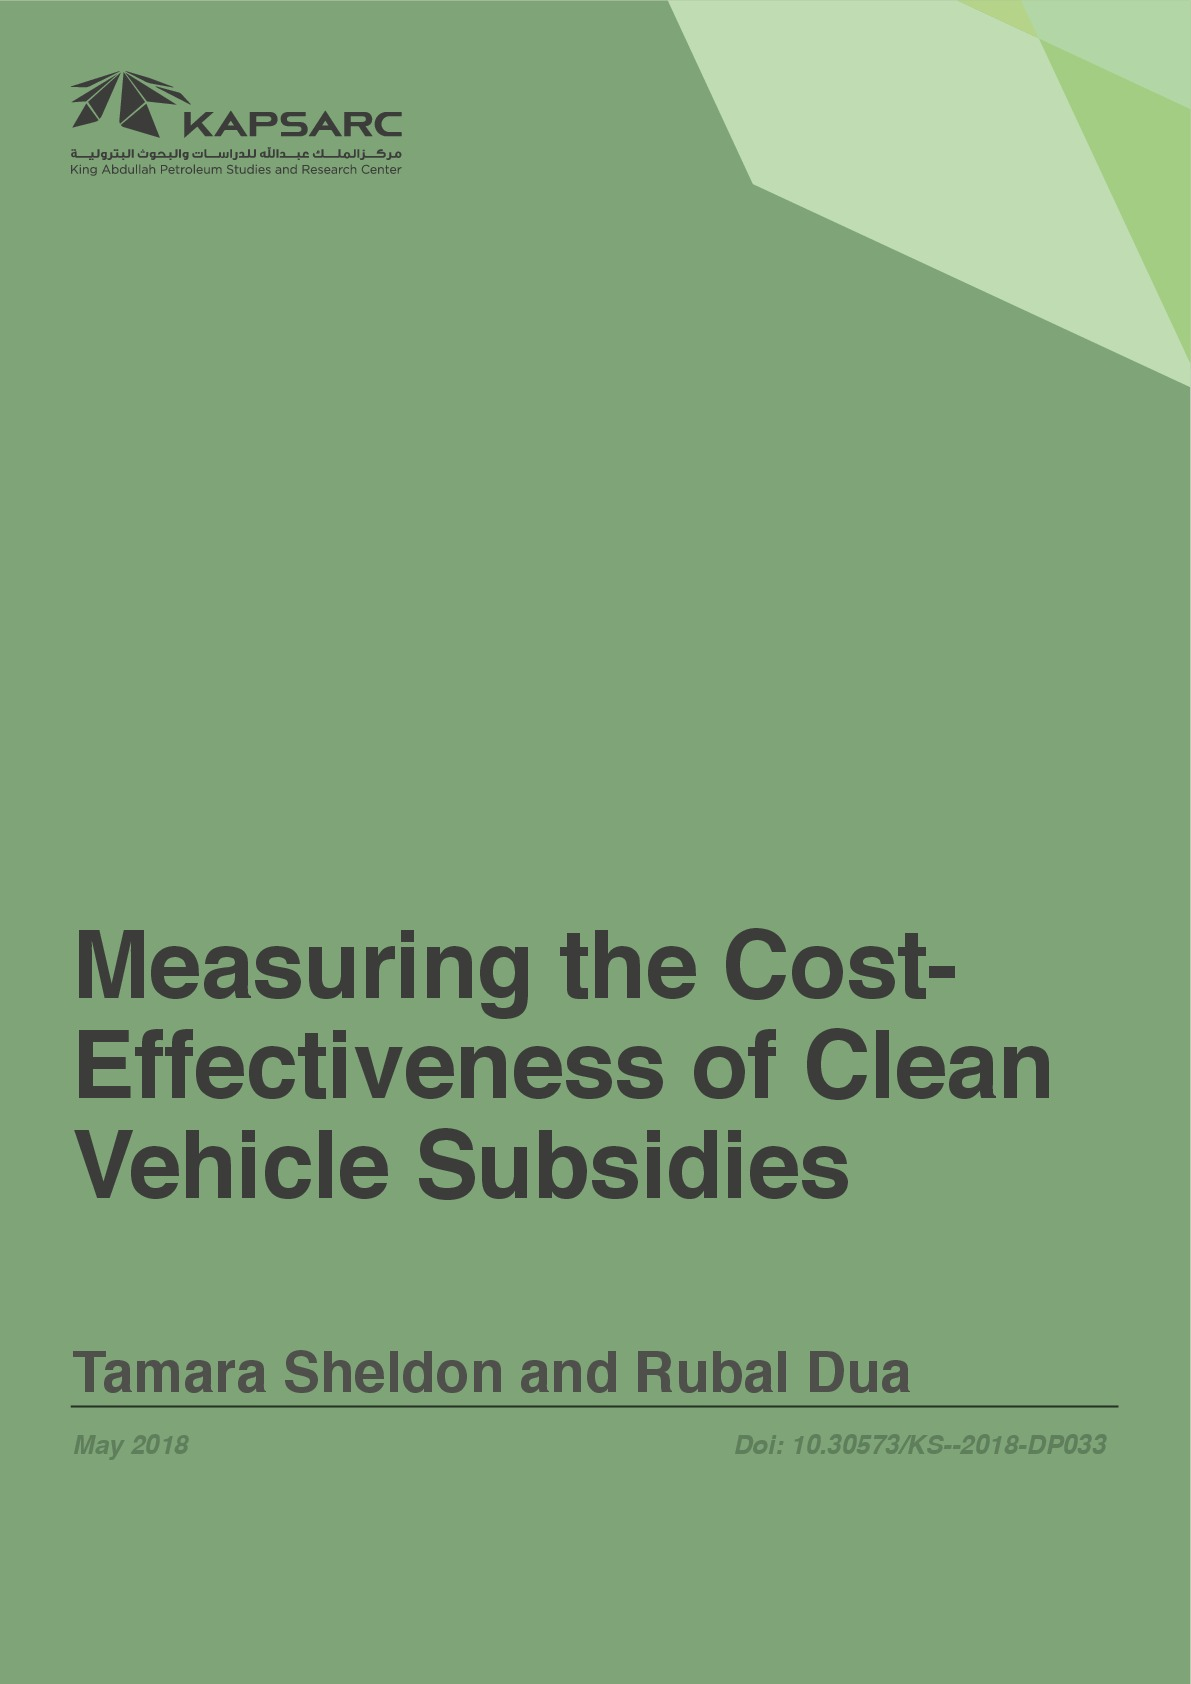 Measuring the Cost-Effectiveness of Clean Vehicle Subsidies